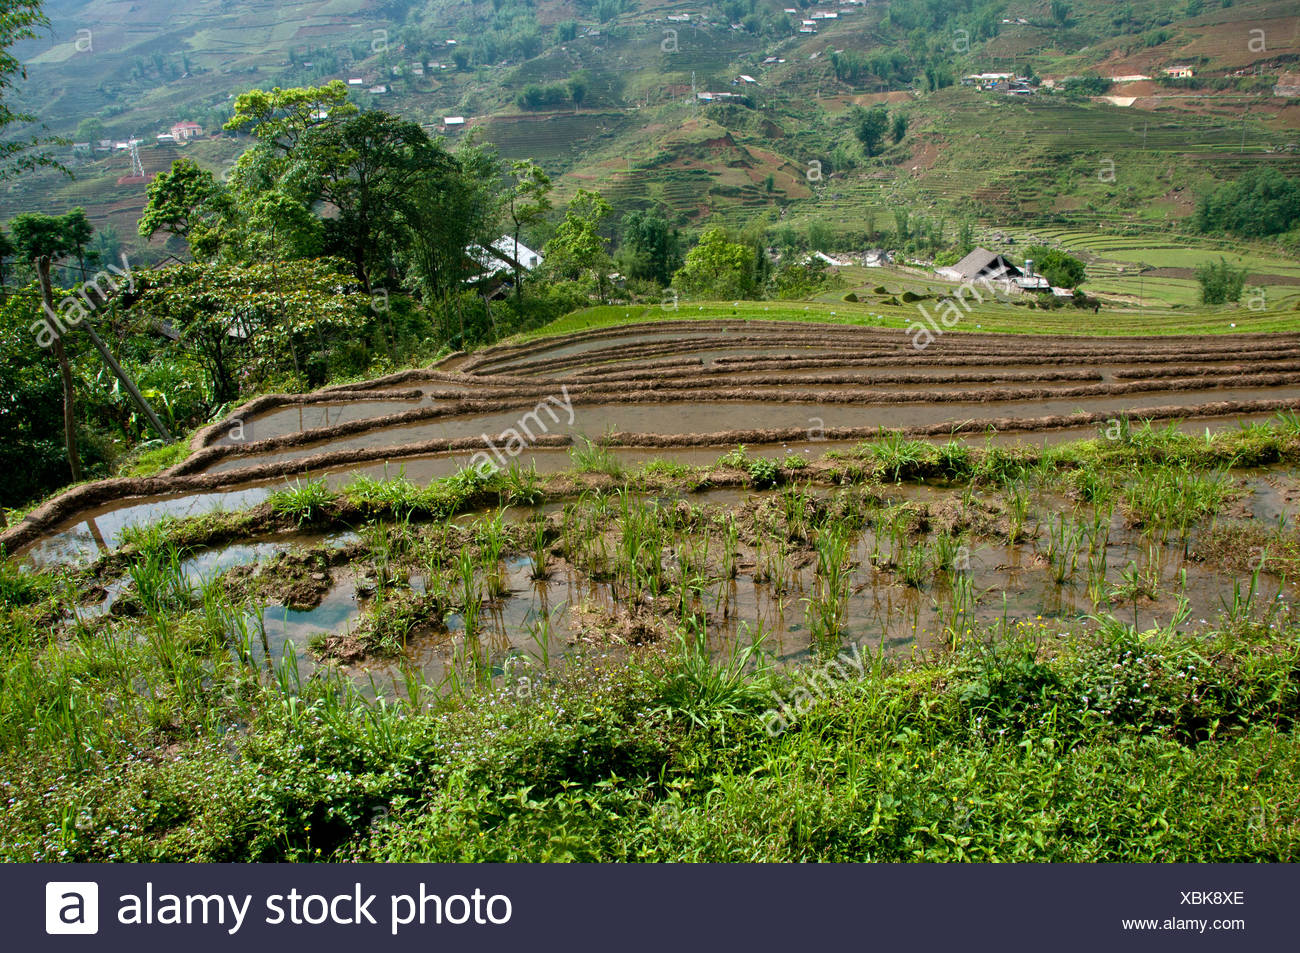 Rice field, terracing, Sapa, Northern Vietnam, Vietnam, Asia, rice, agriculture - Stock Image